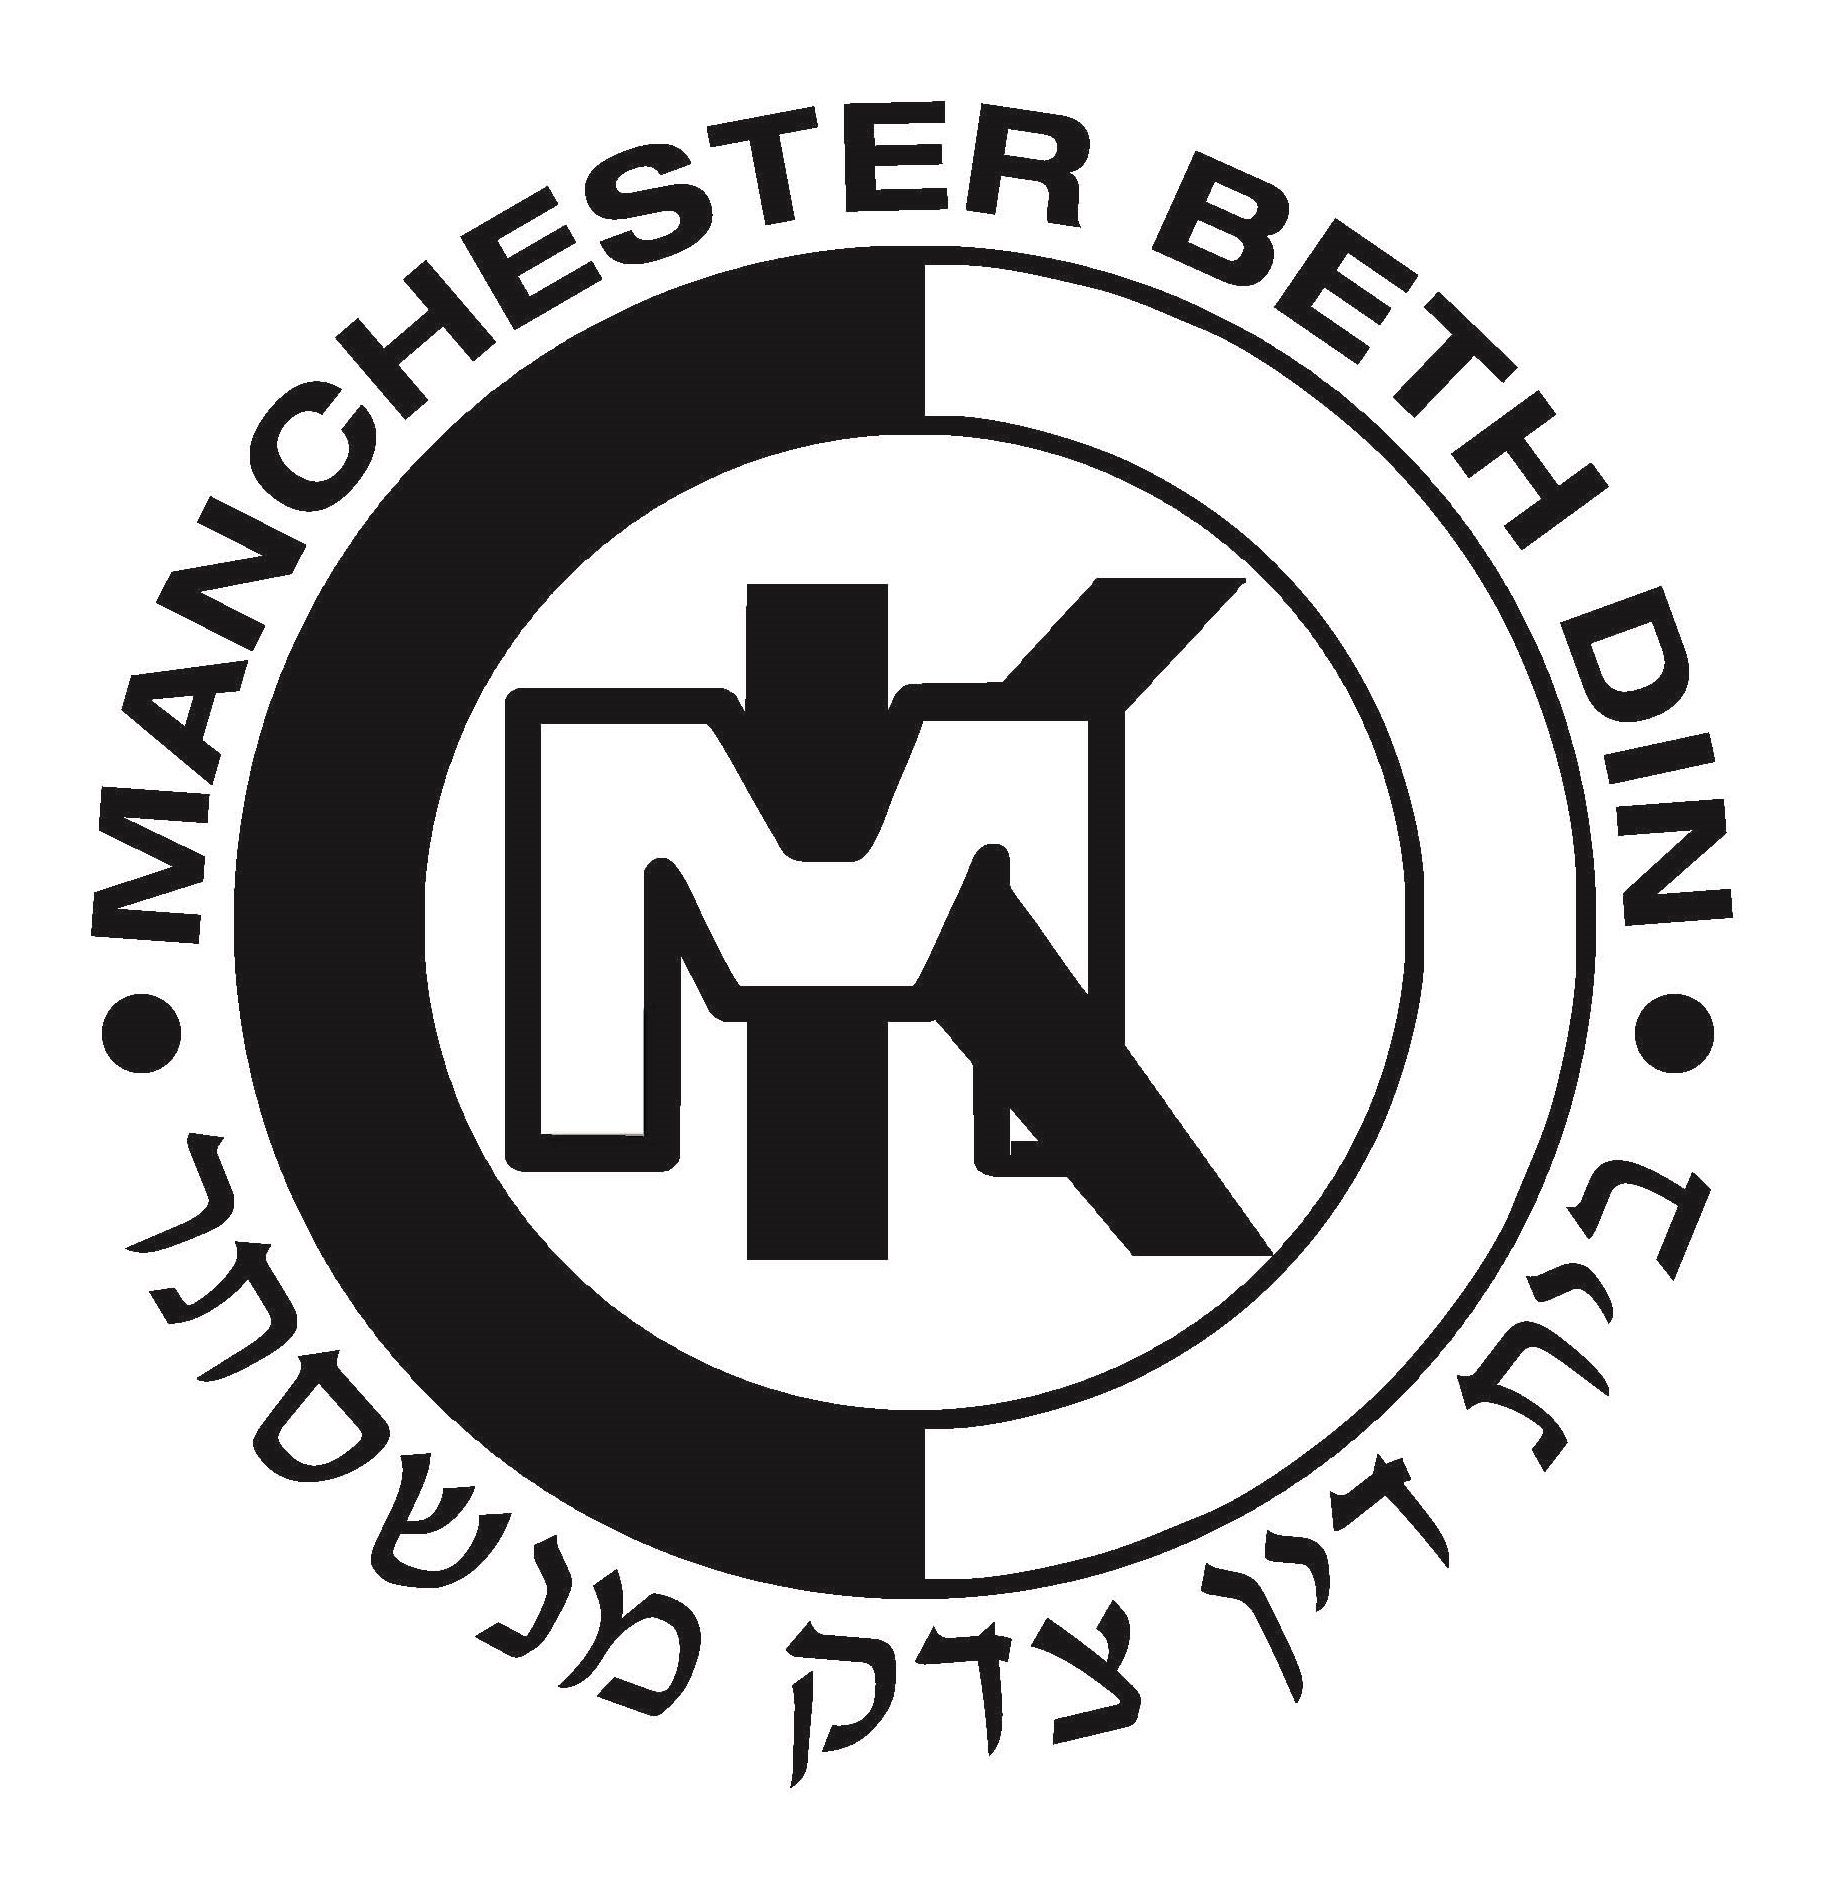 Crc directory of kosher certifying agencies manchester beth din biocorpaavc Gallery